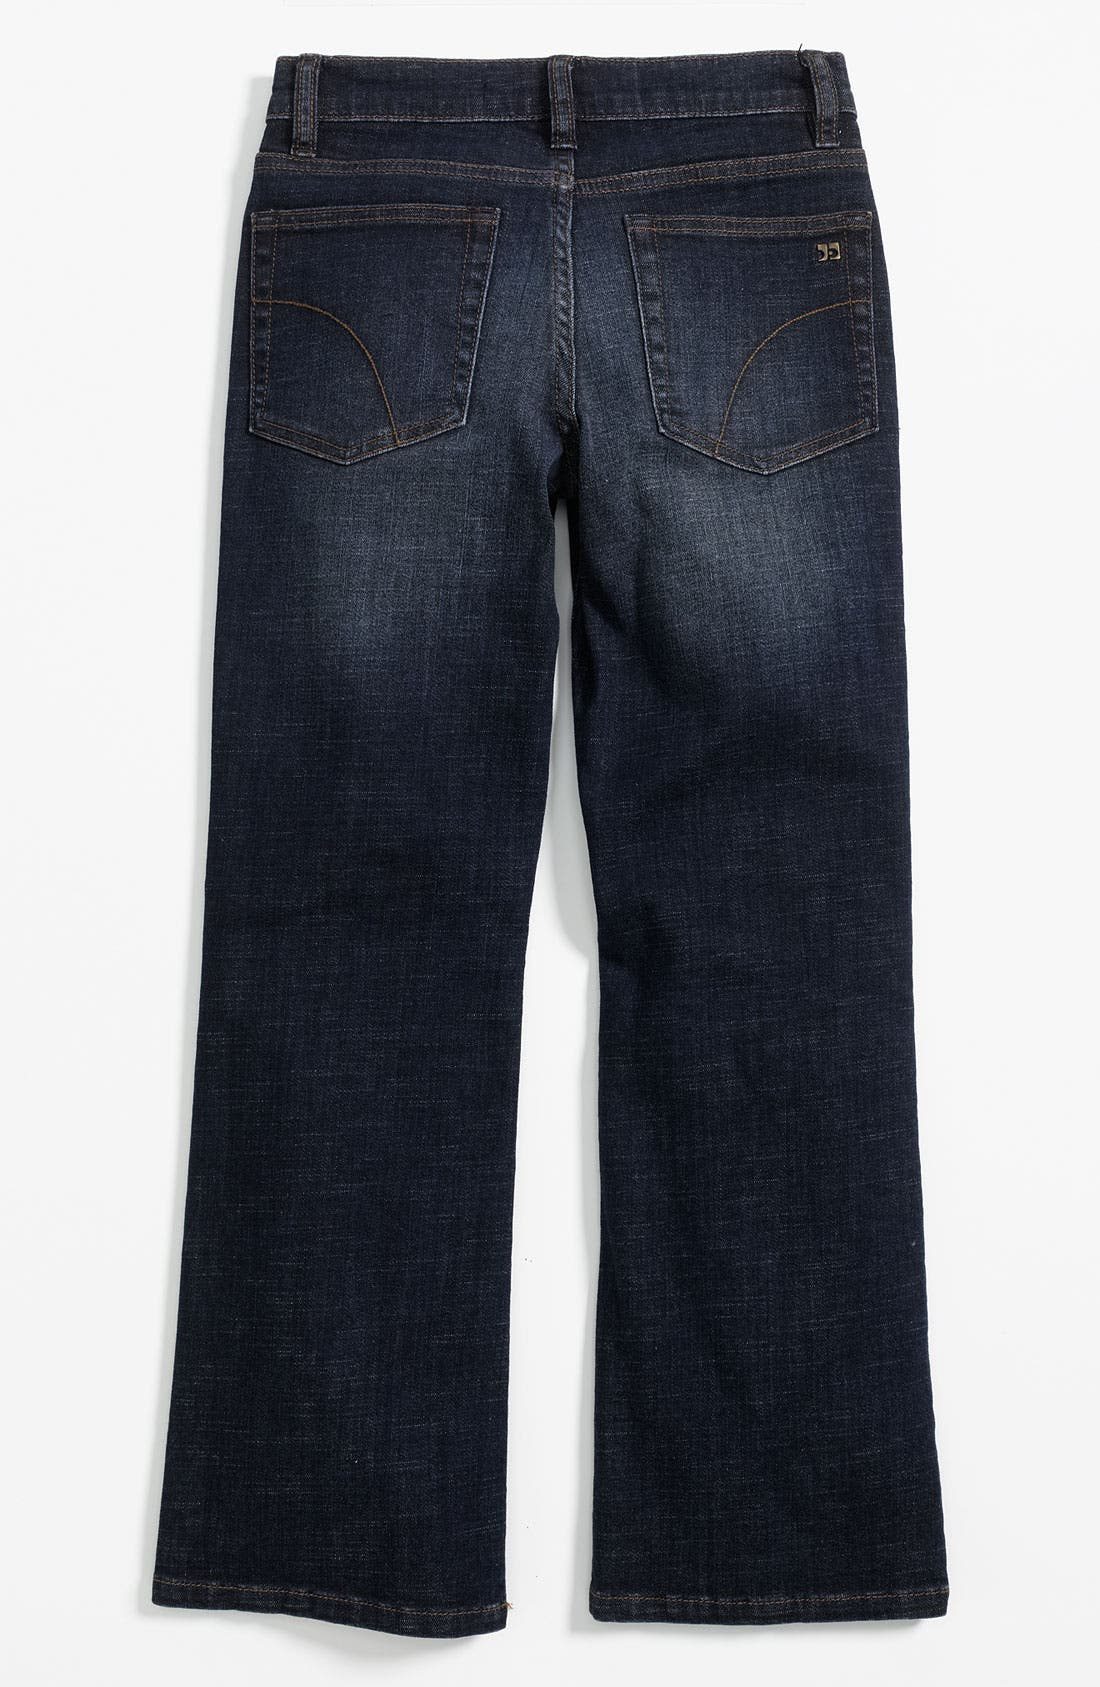 Alternate Image 1 Selected - Joe's 'Rebel' Jeans (Big Boys)